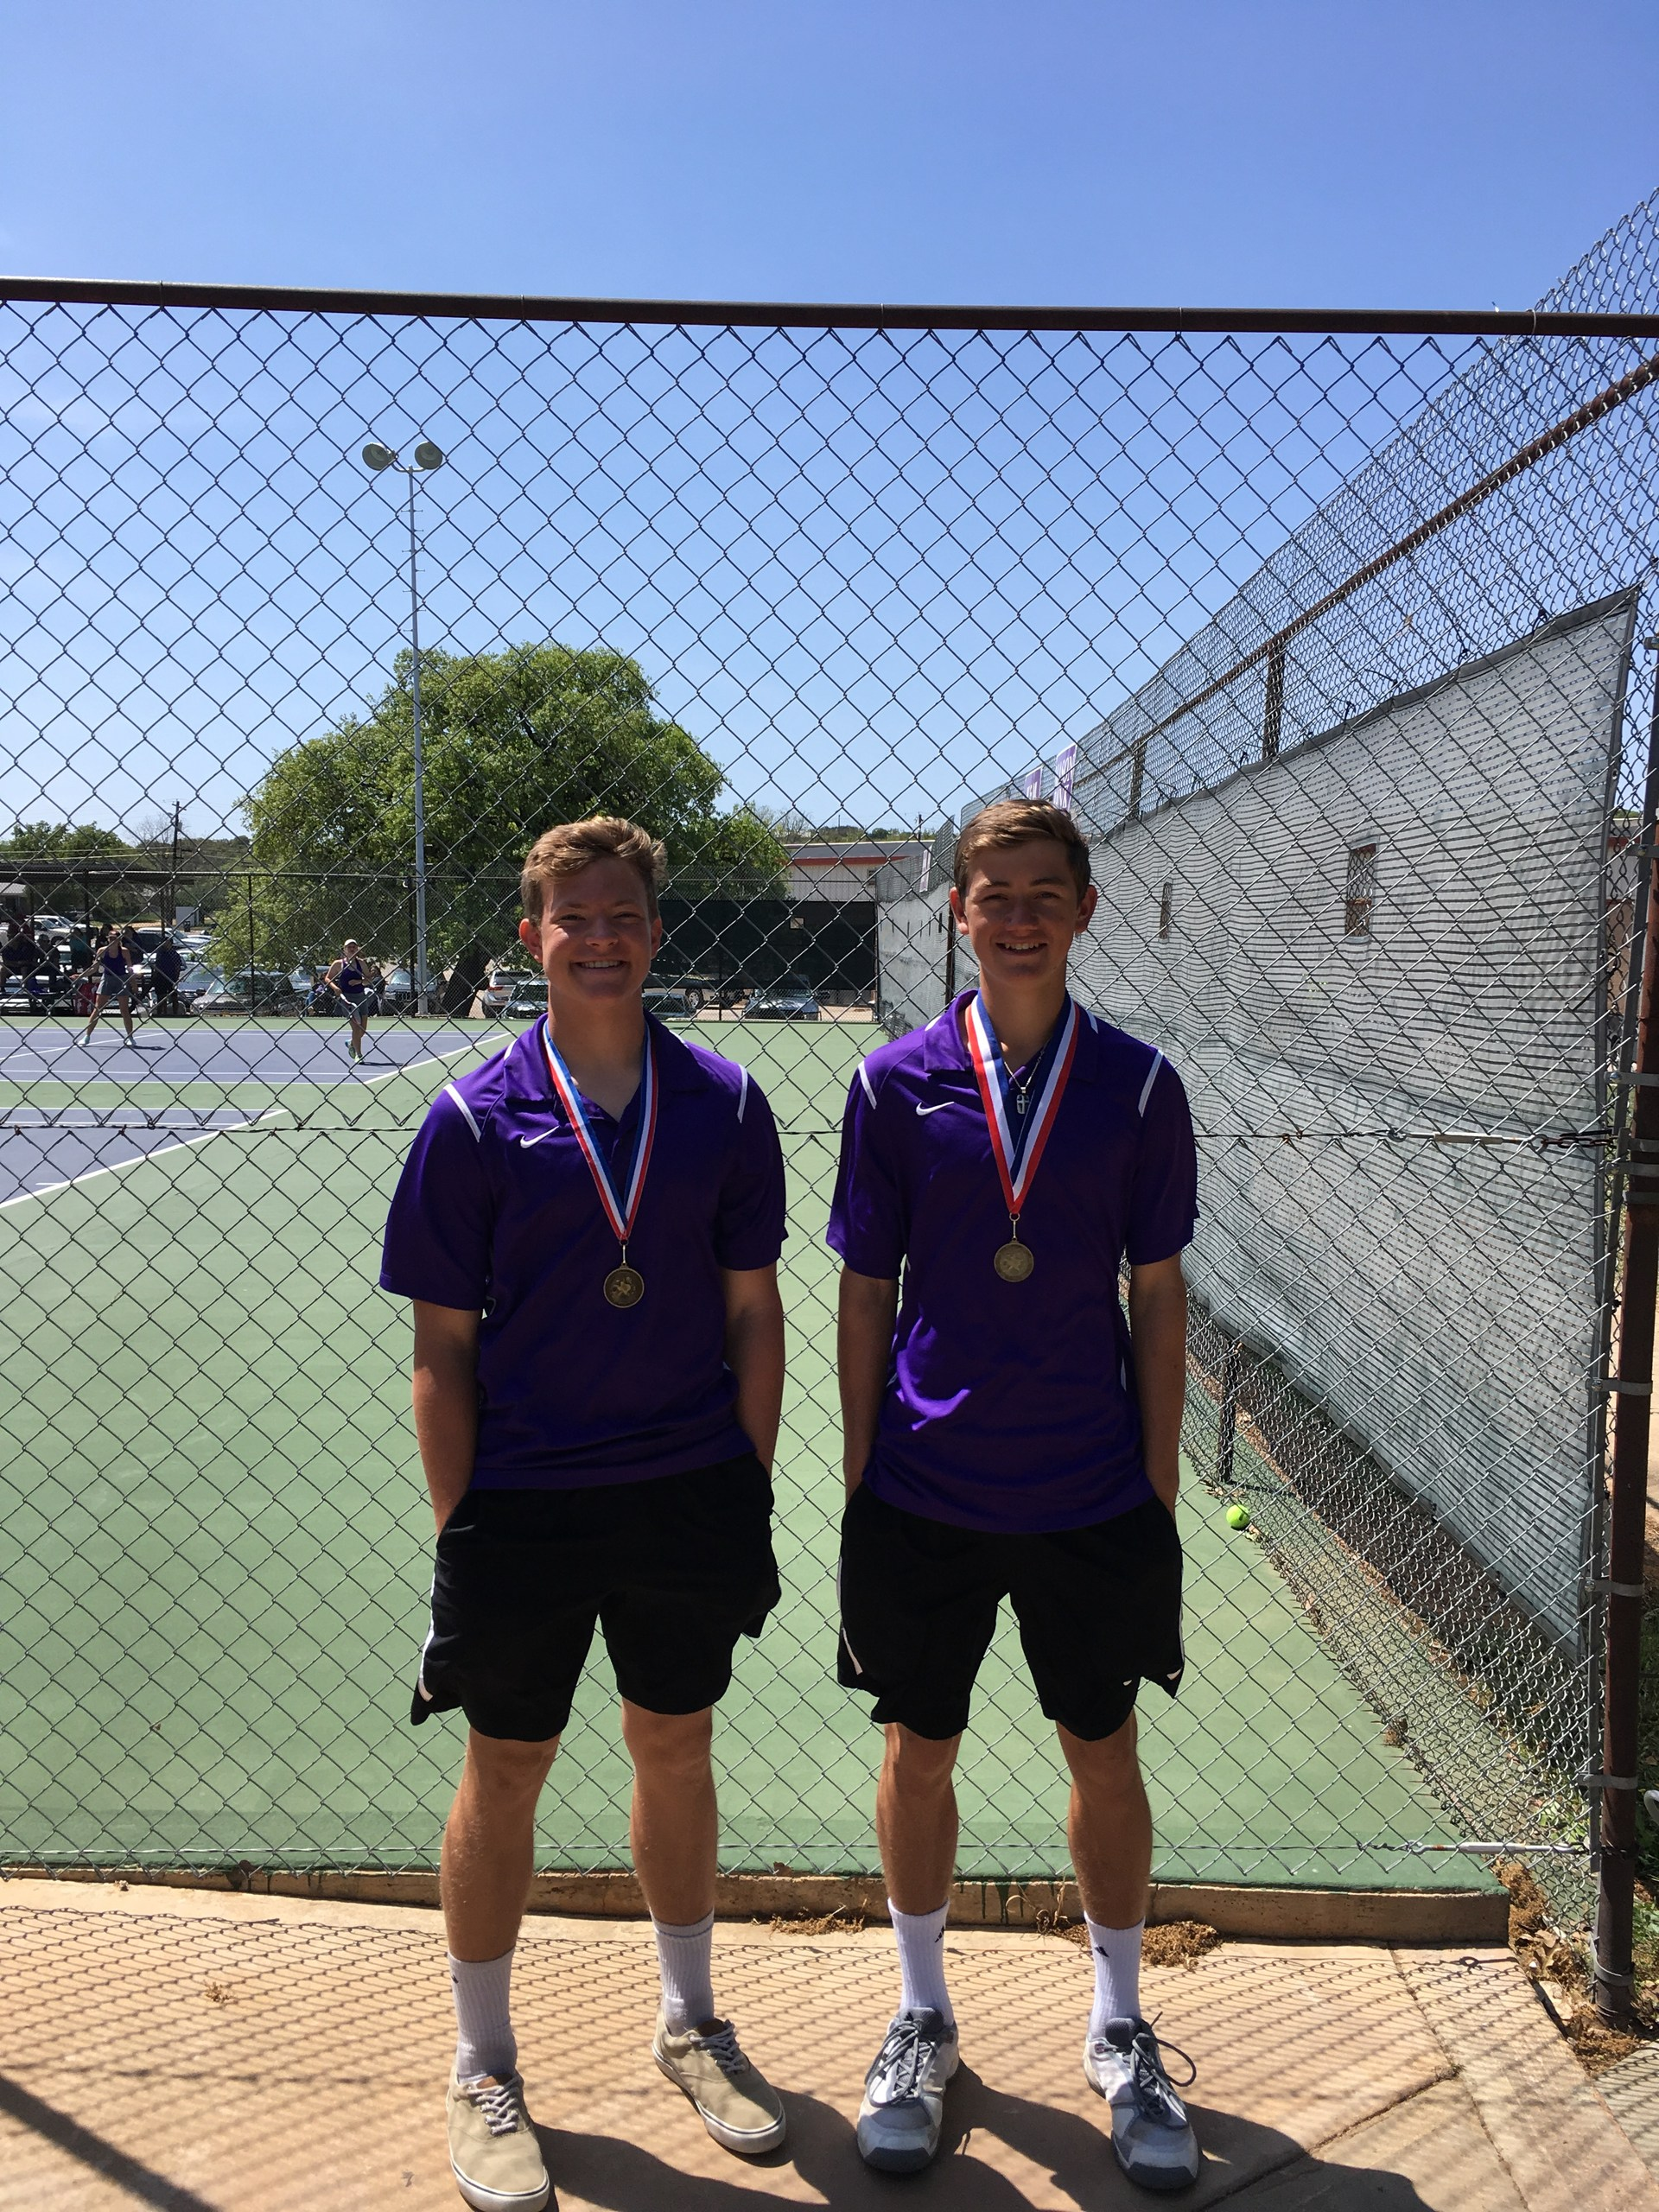 John Benefield & Whitt Bierschwale - JV Boys Doubles Champs